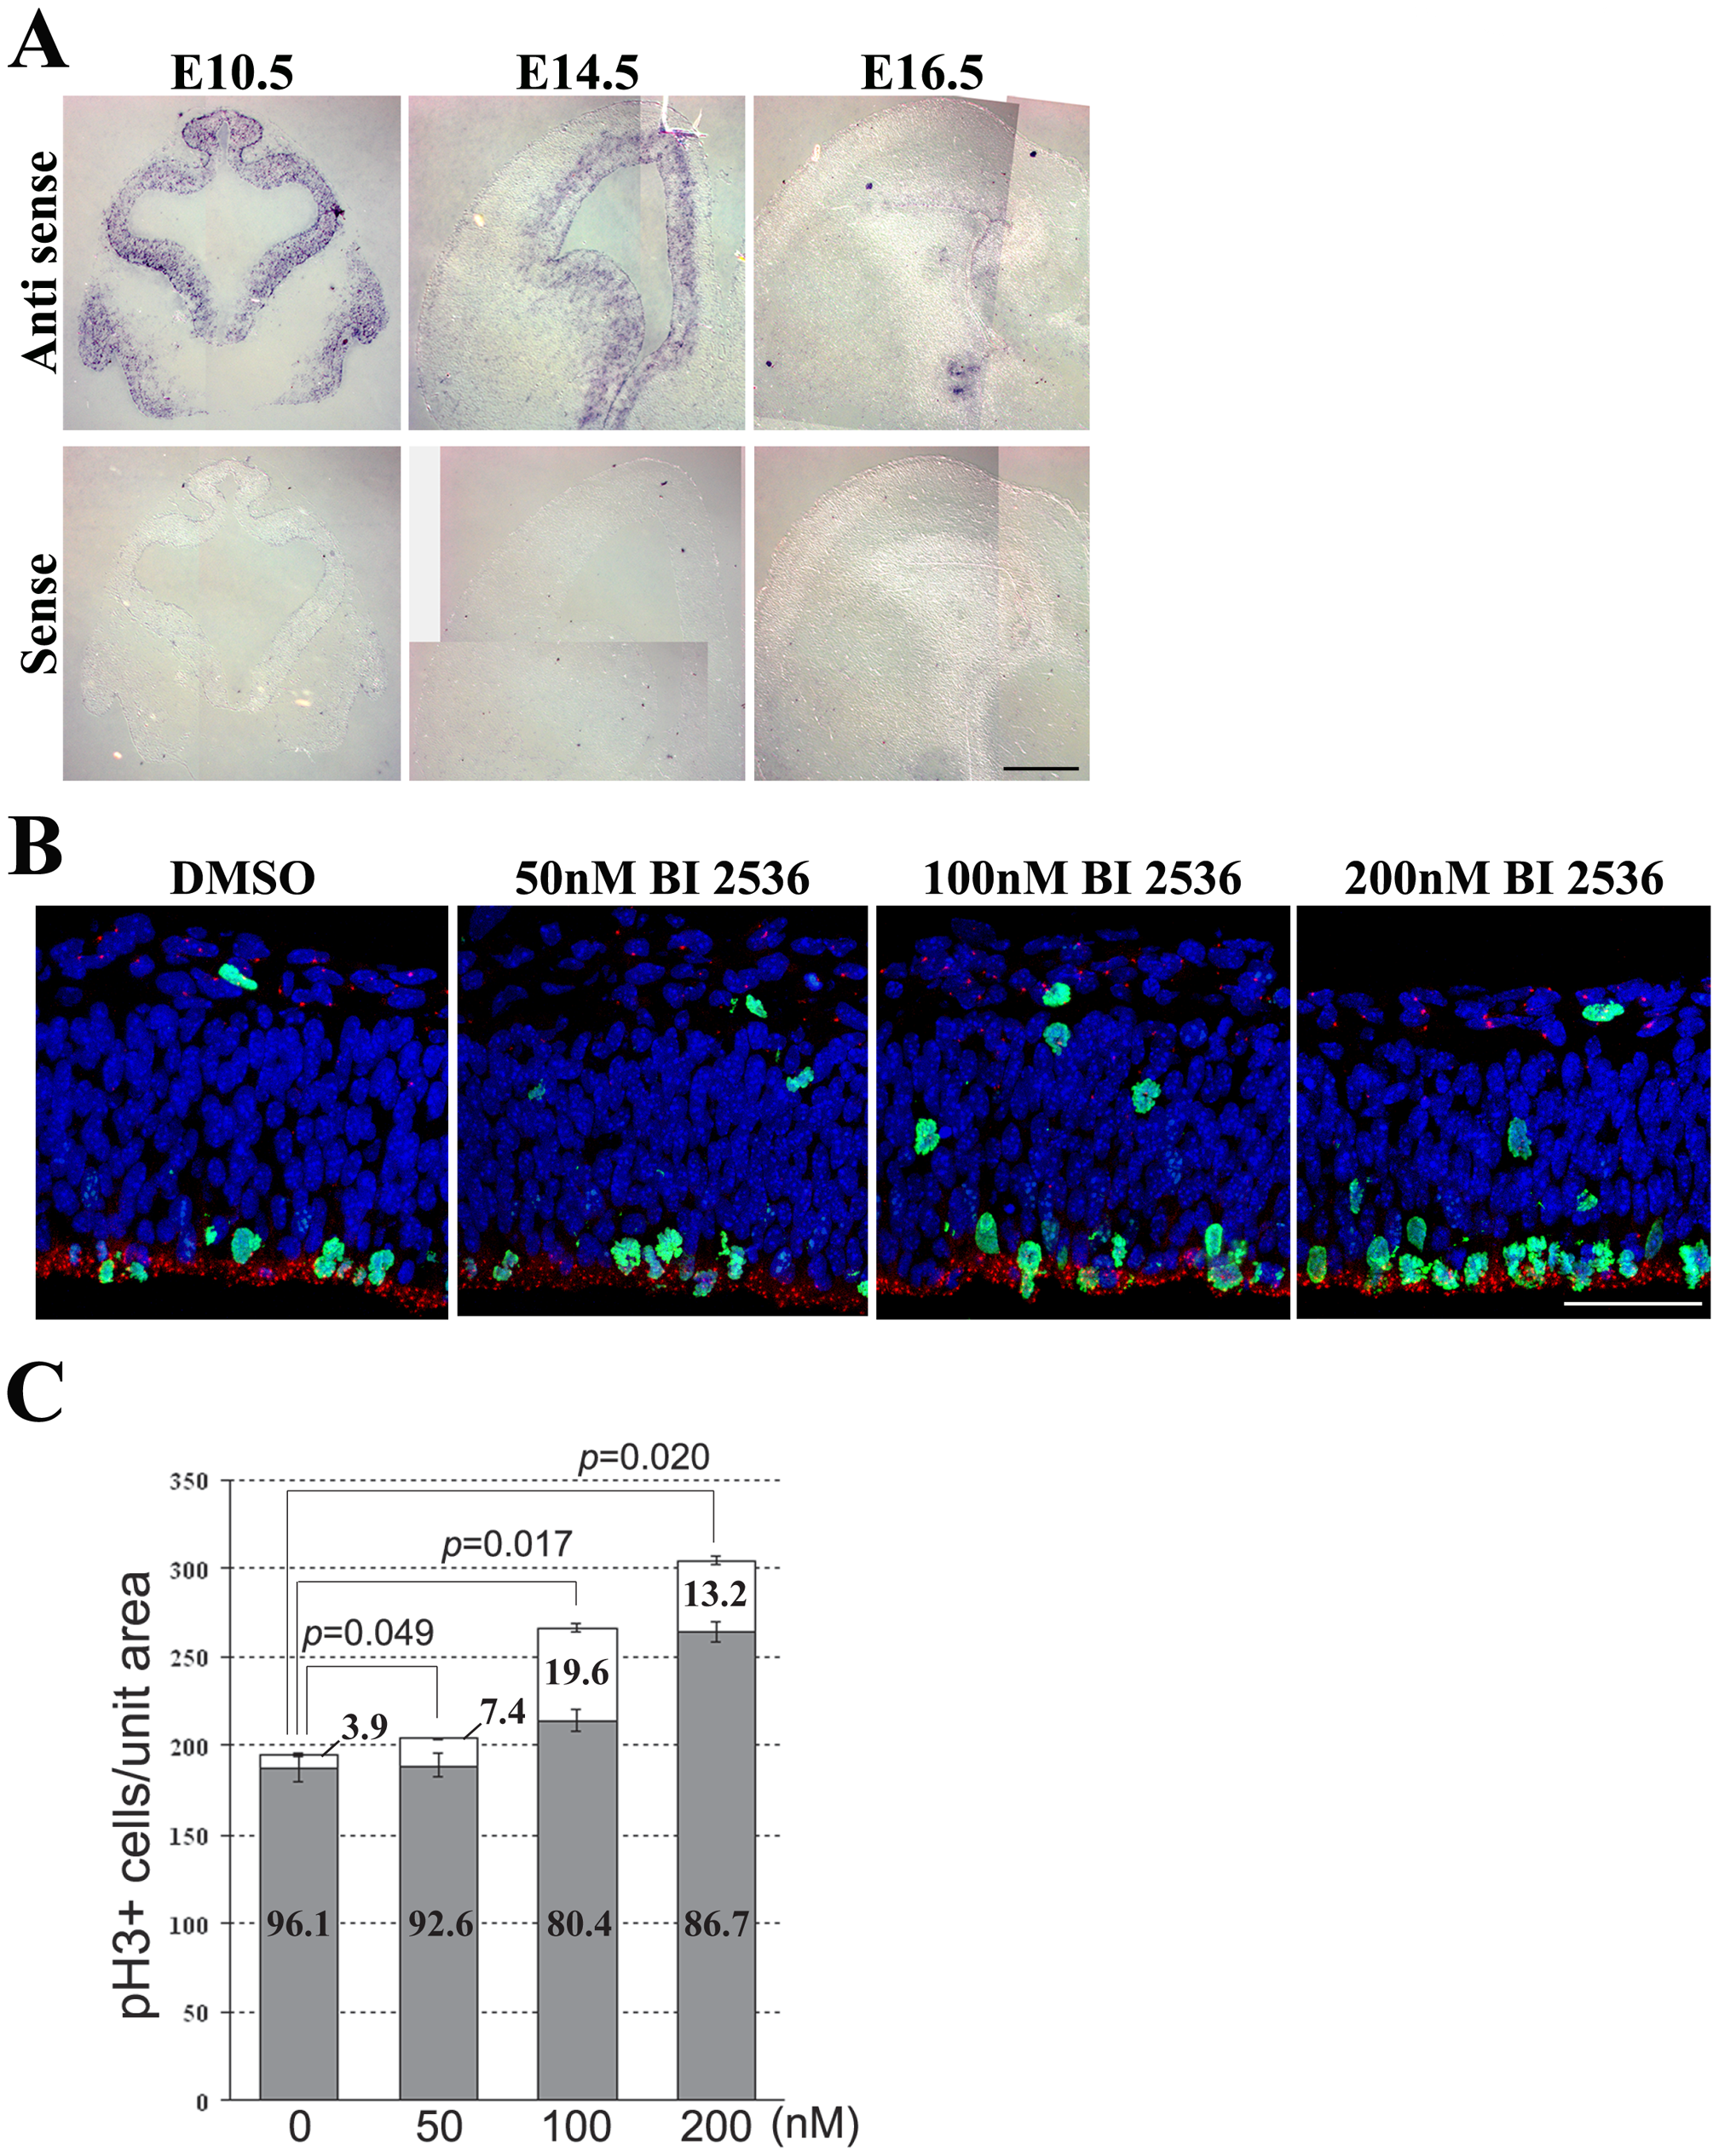 Plk1 co-operates in controlling mitotic progression and mitotic spindle orientation.